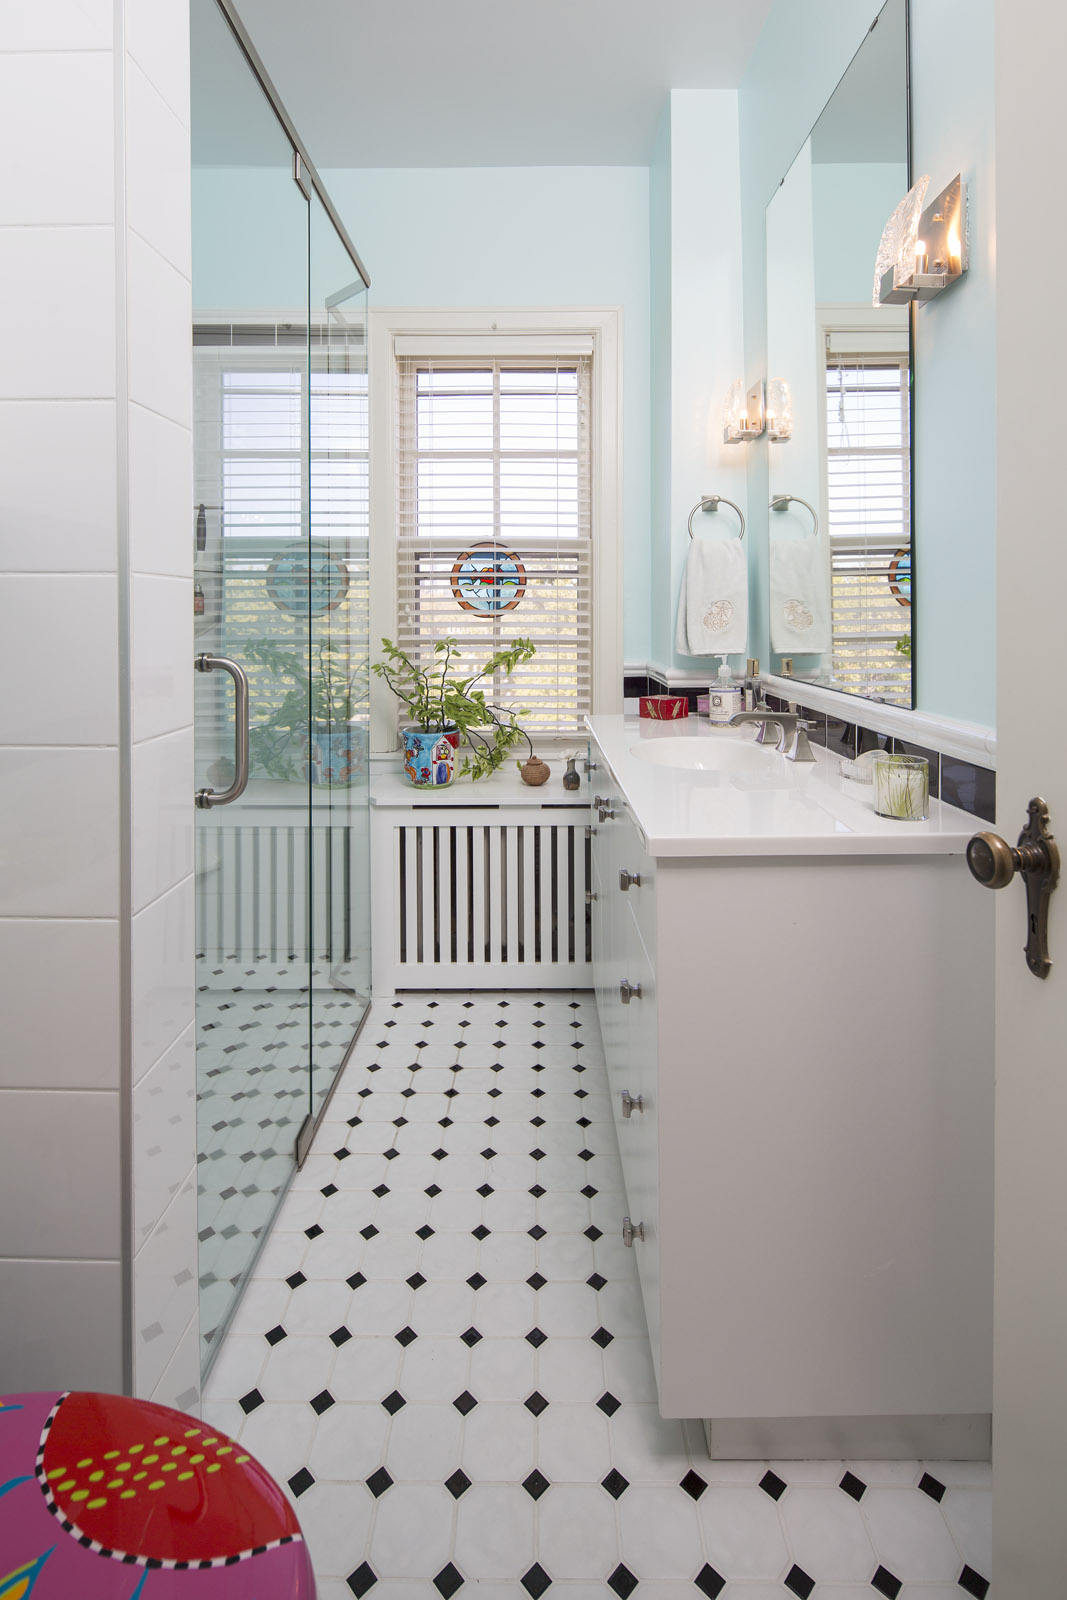 Interior View of a Remodeled Bathroom